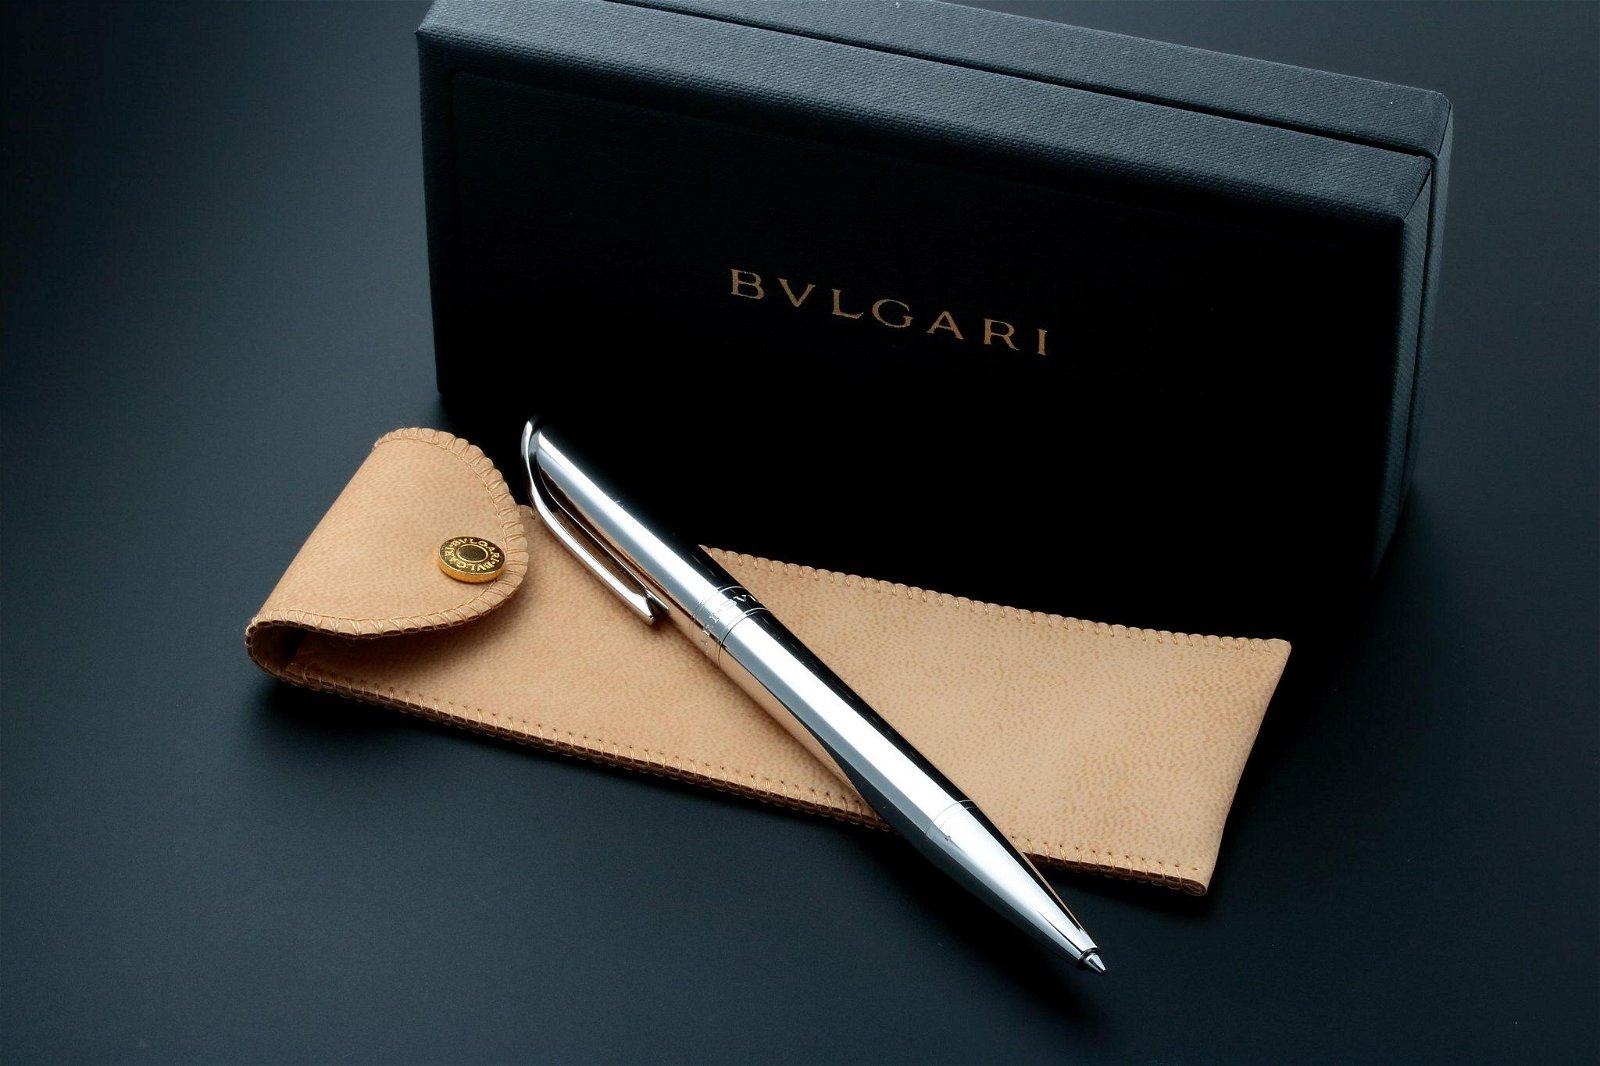 Bvlgari Rollerball Pen Sterling Silver with Box